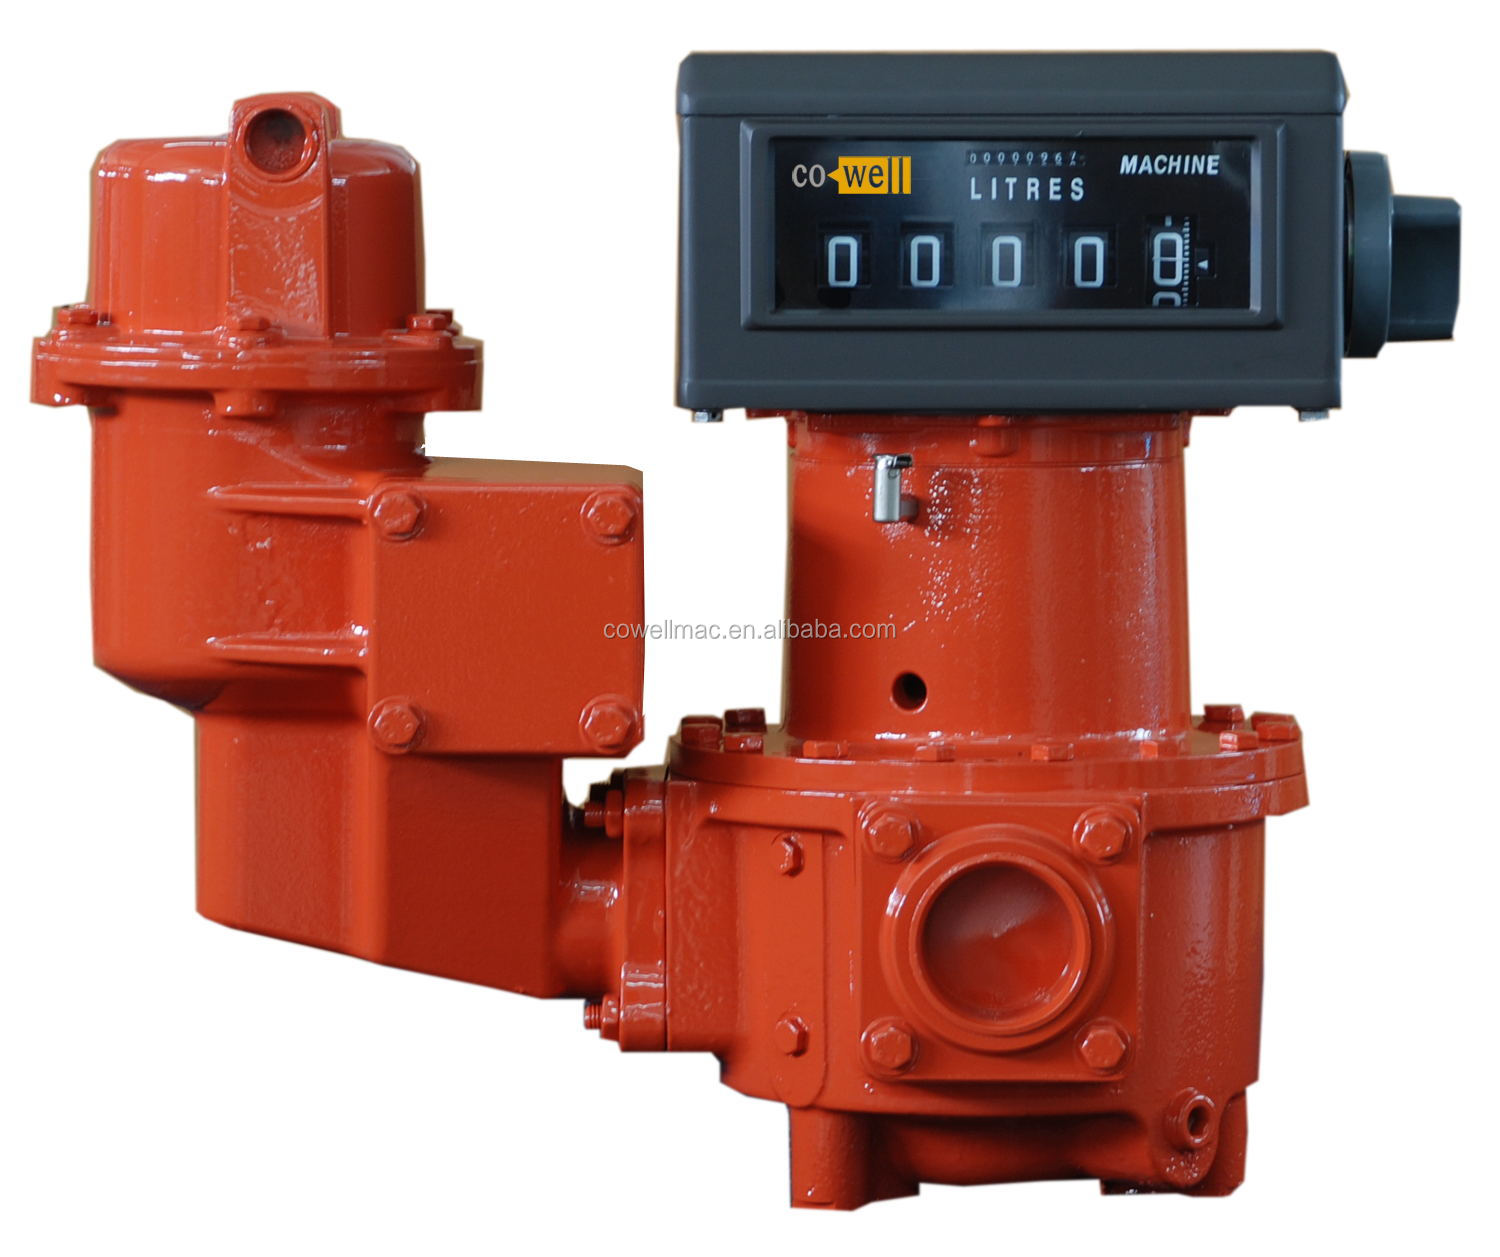 Real Gravity flow meter for tank fuel oil unloading